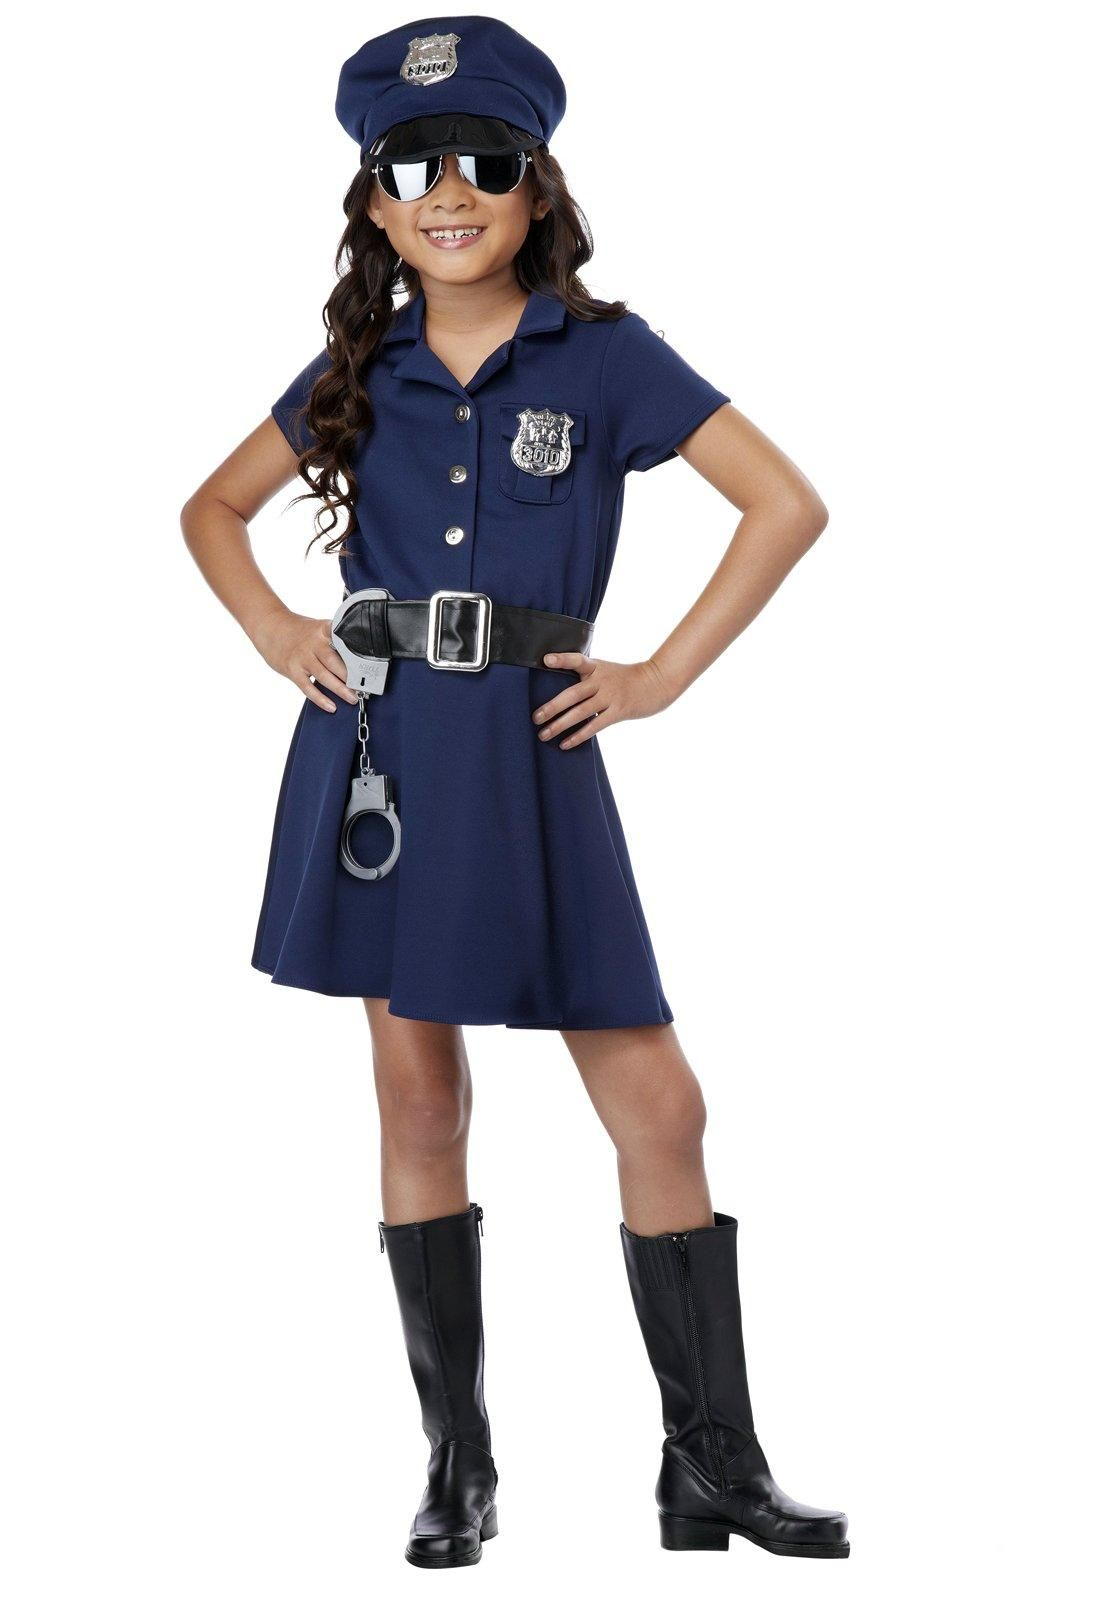 Party City at Center of Controversy Over Halloween Kids' Costumes ...